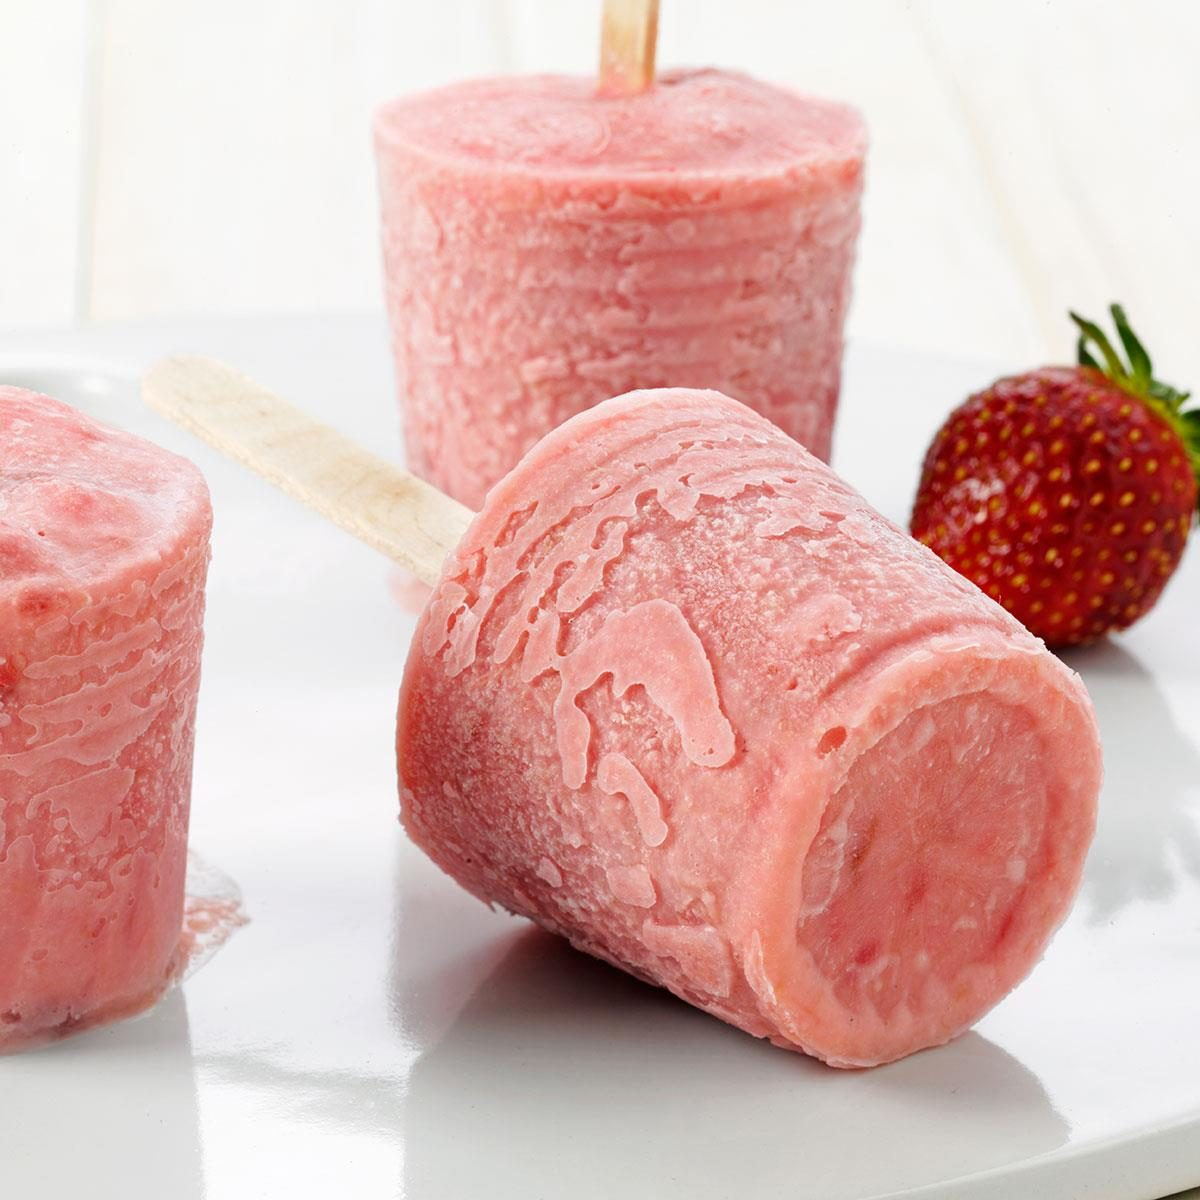 Strawberry-Rhubarb Ice Pops Recipe | Taste of Home